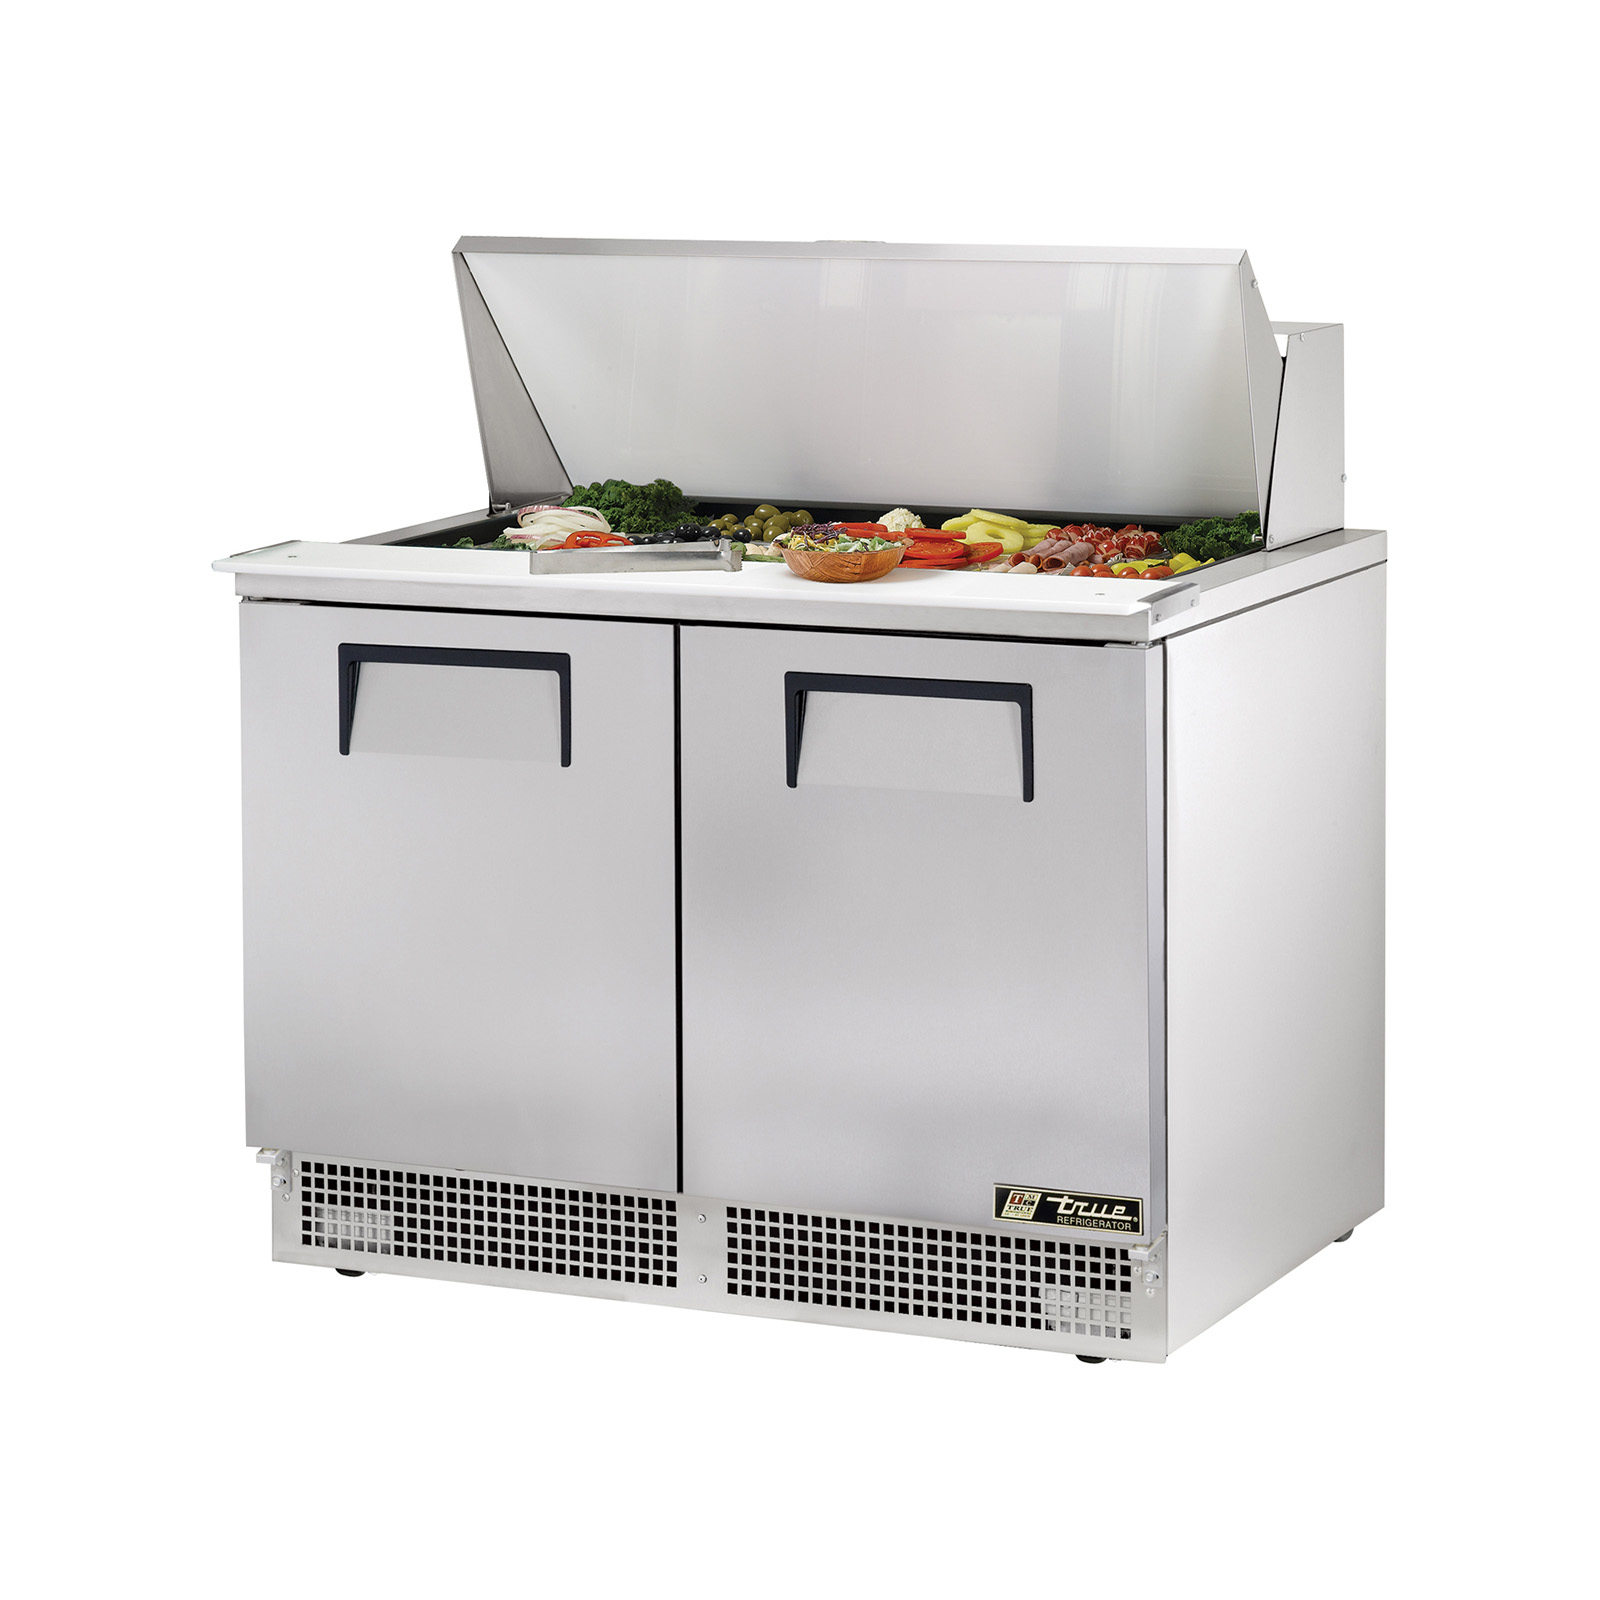 TFP-48-18M True - Sandwich/Salad Unit two section